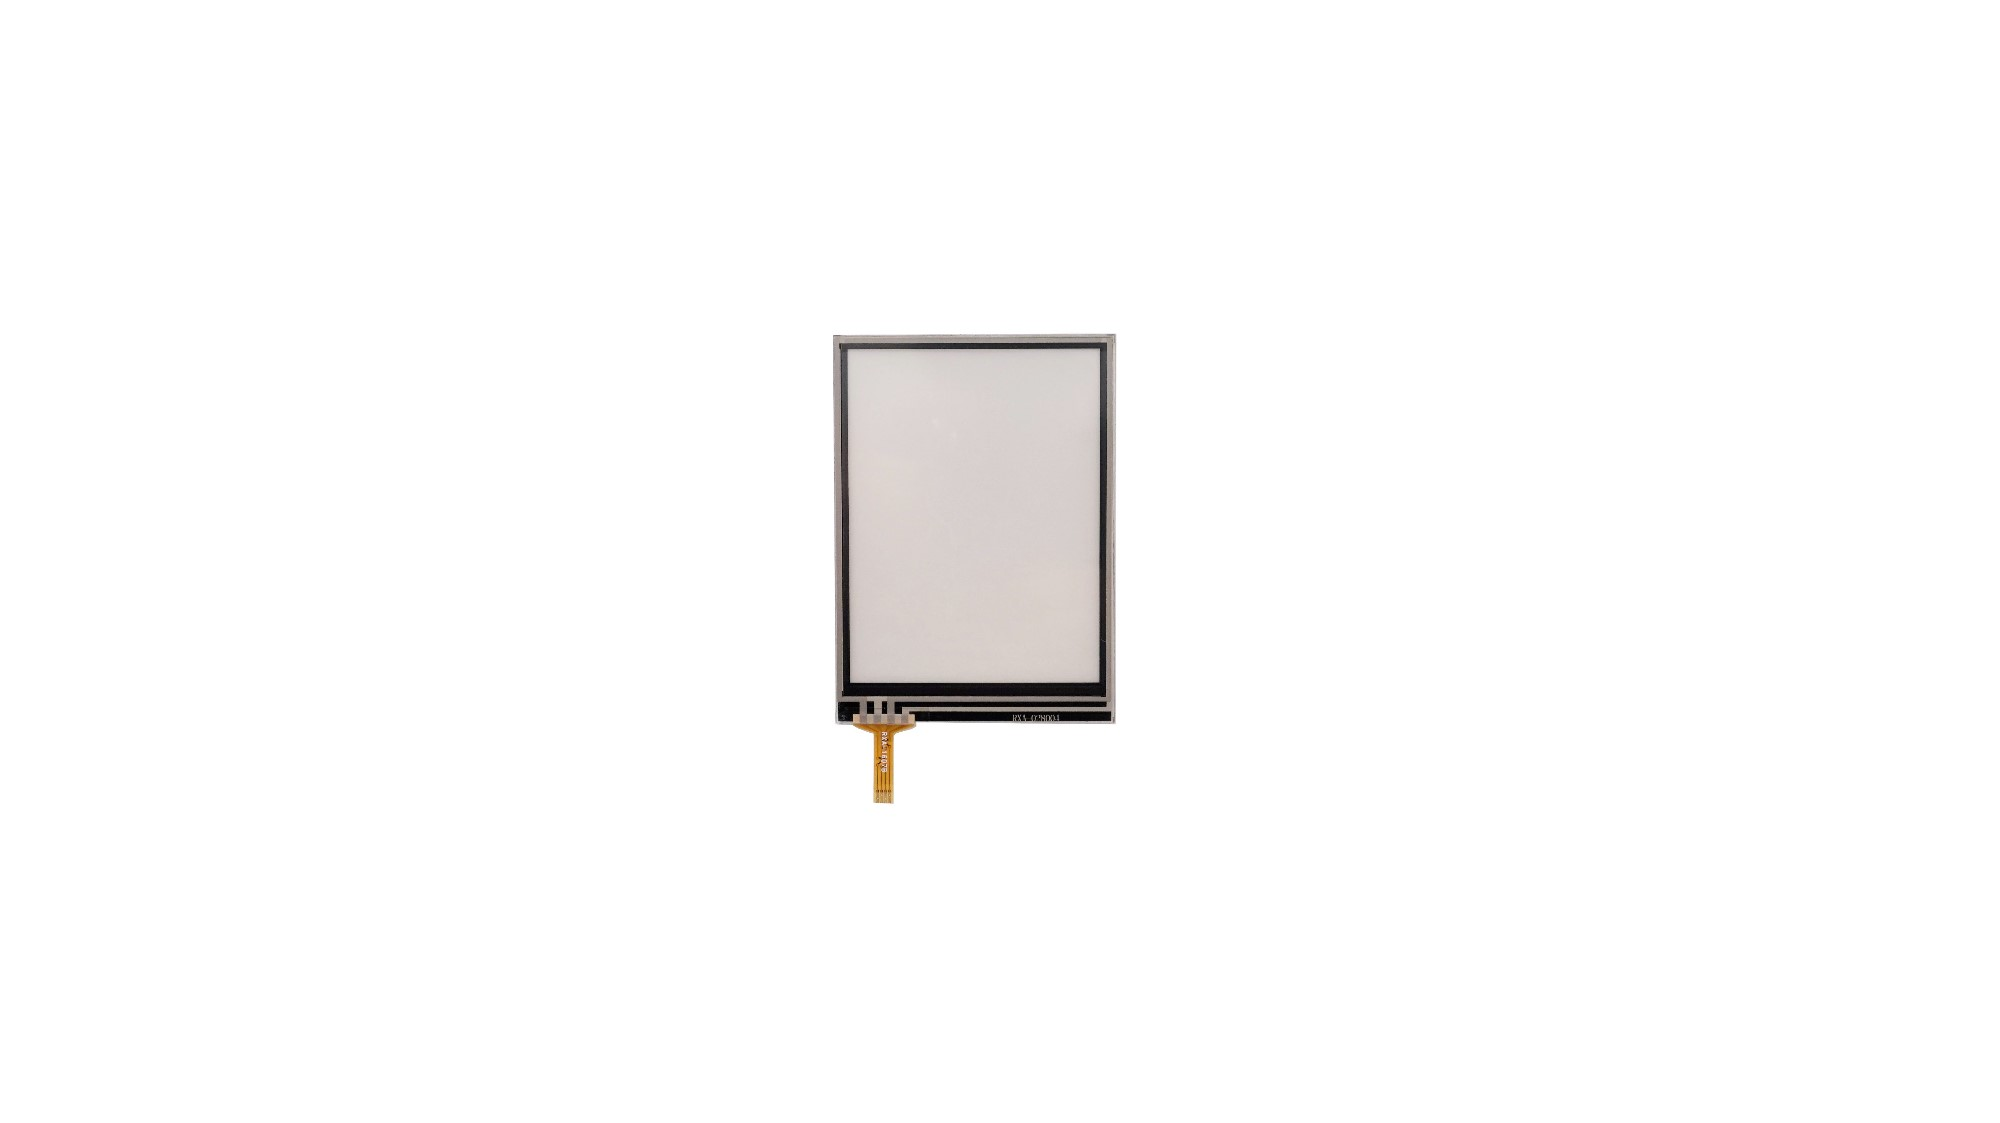 2.8 Inch 4wire Rtp Overlay Transparent Glass Touch Screen